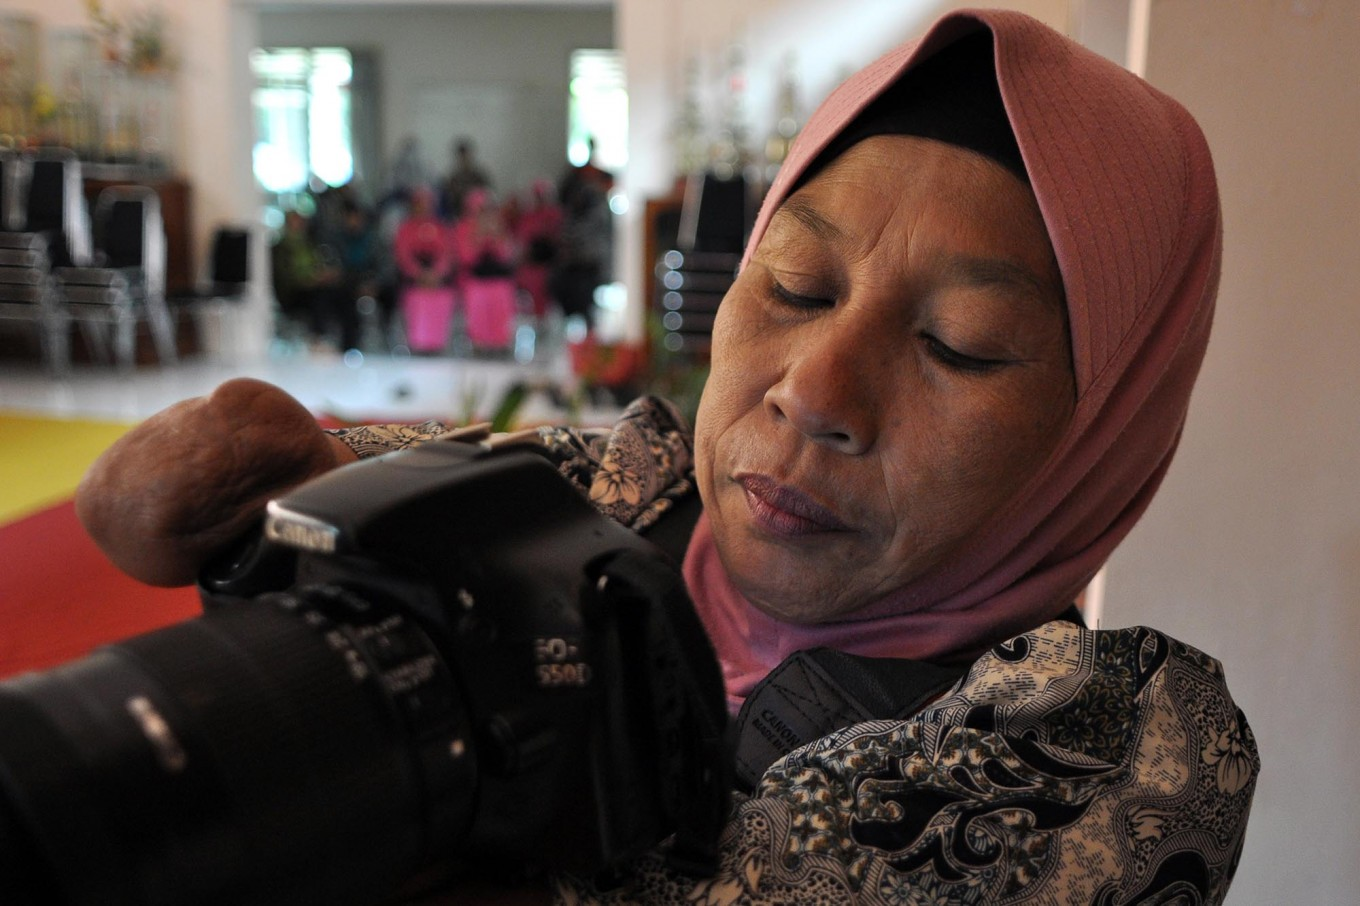 Rusidah checks the result of her photoshoot on her camera's LCD. JP/Magnus Hendratmo